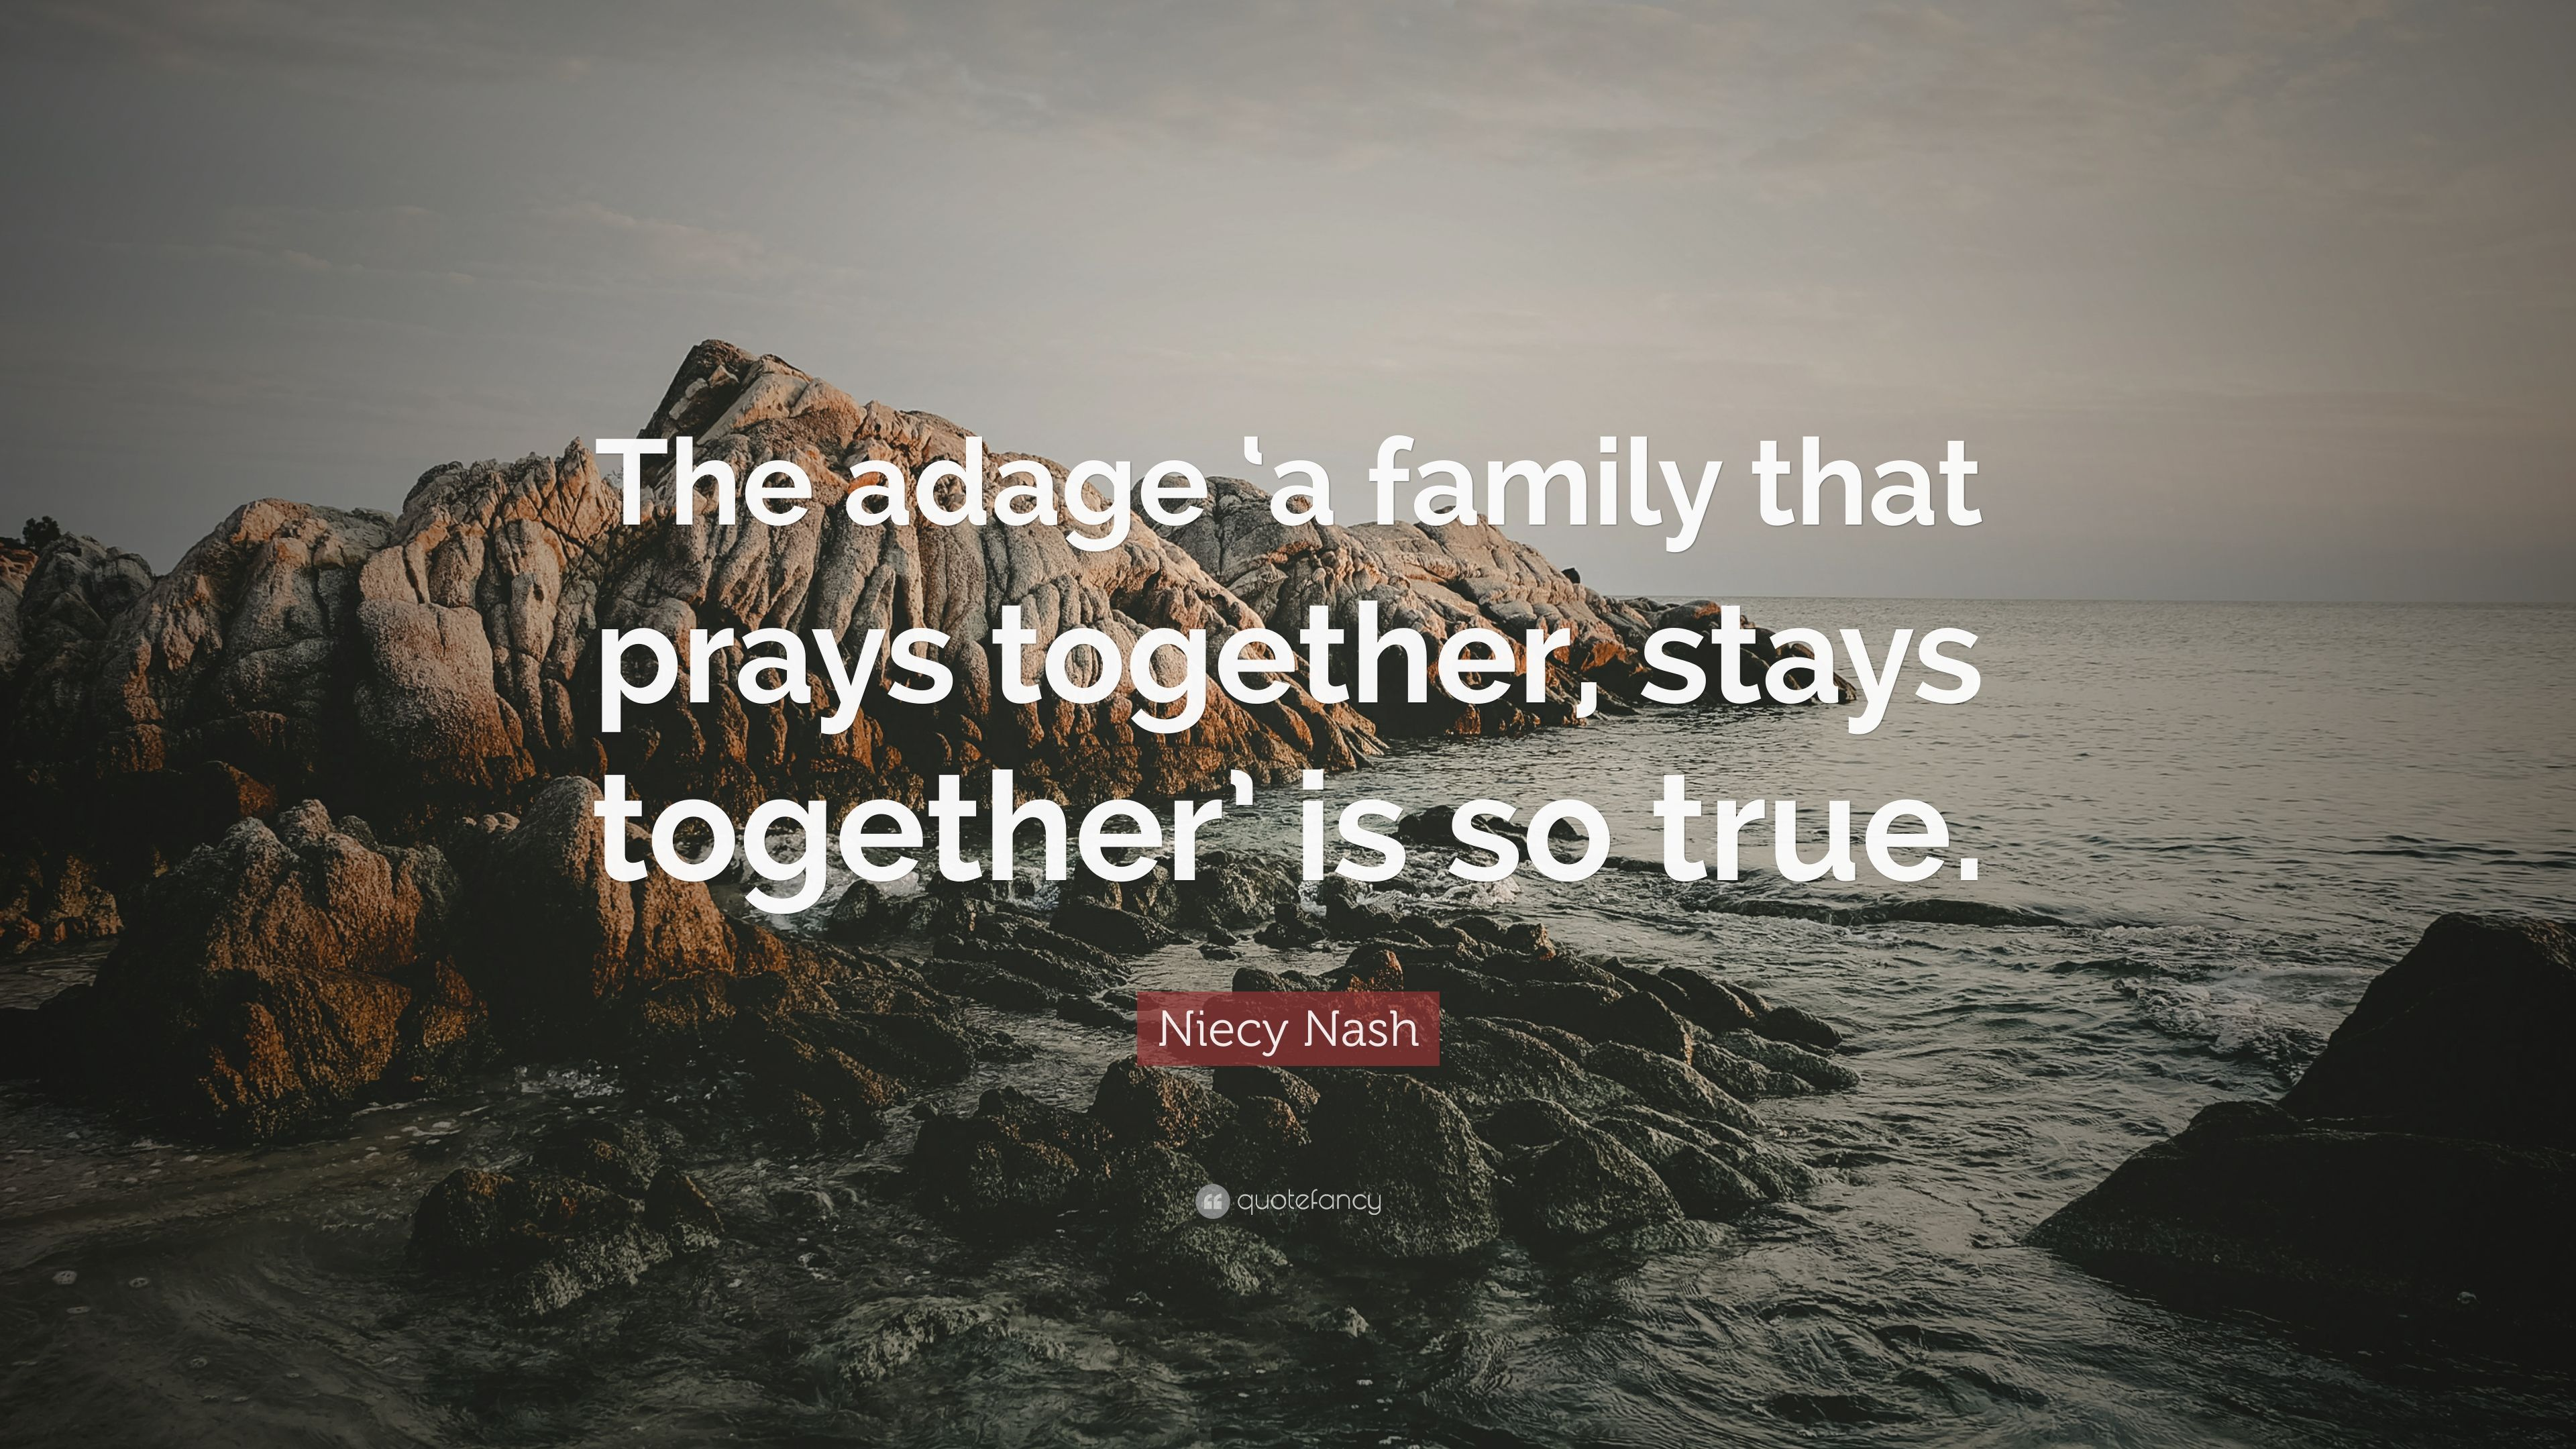 Niecy Nash Quote The Adage A Family That Prays Together Stays